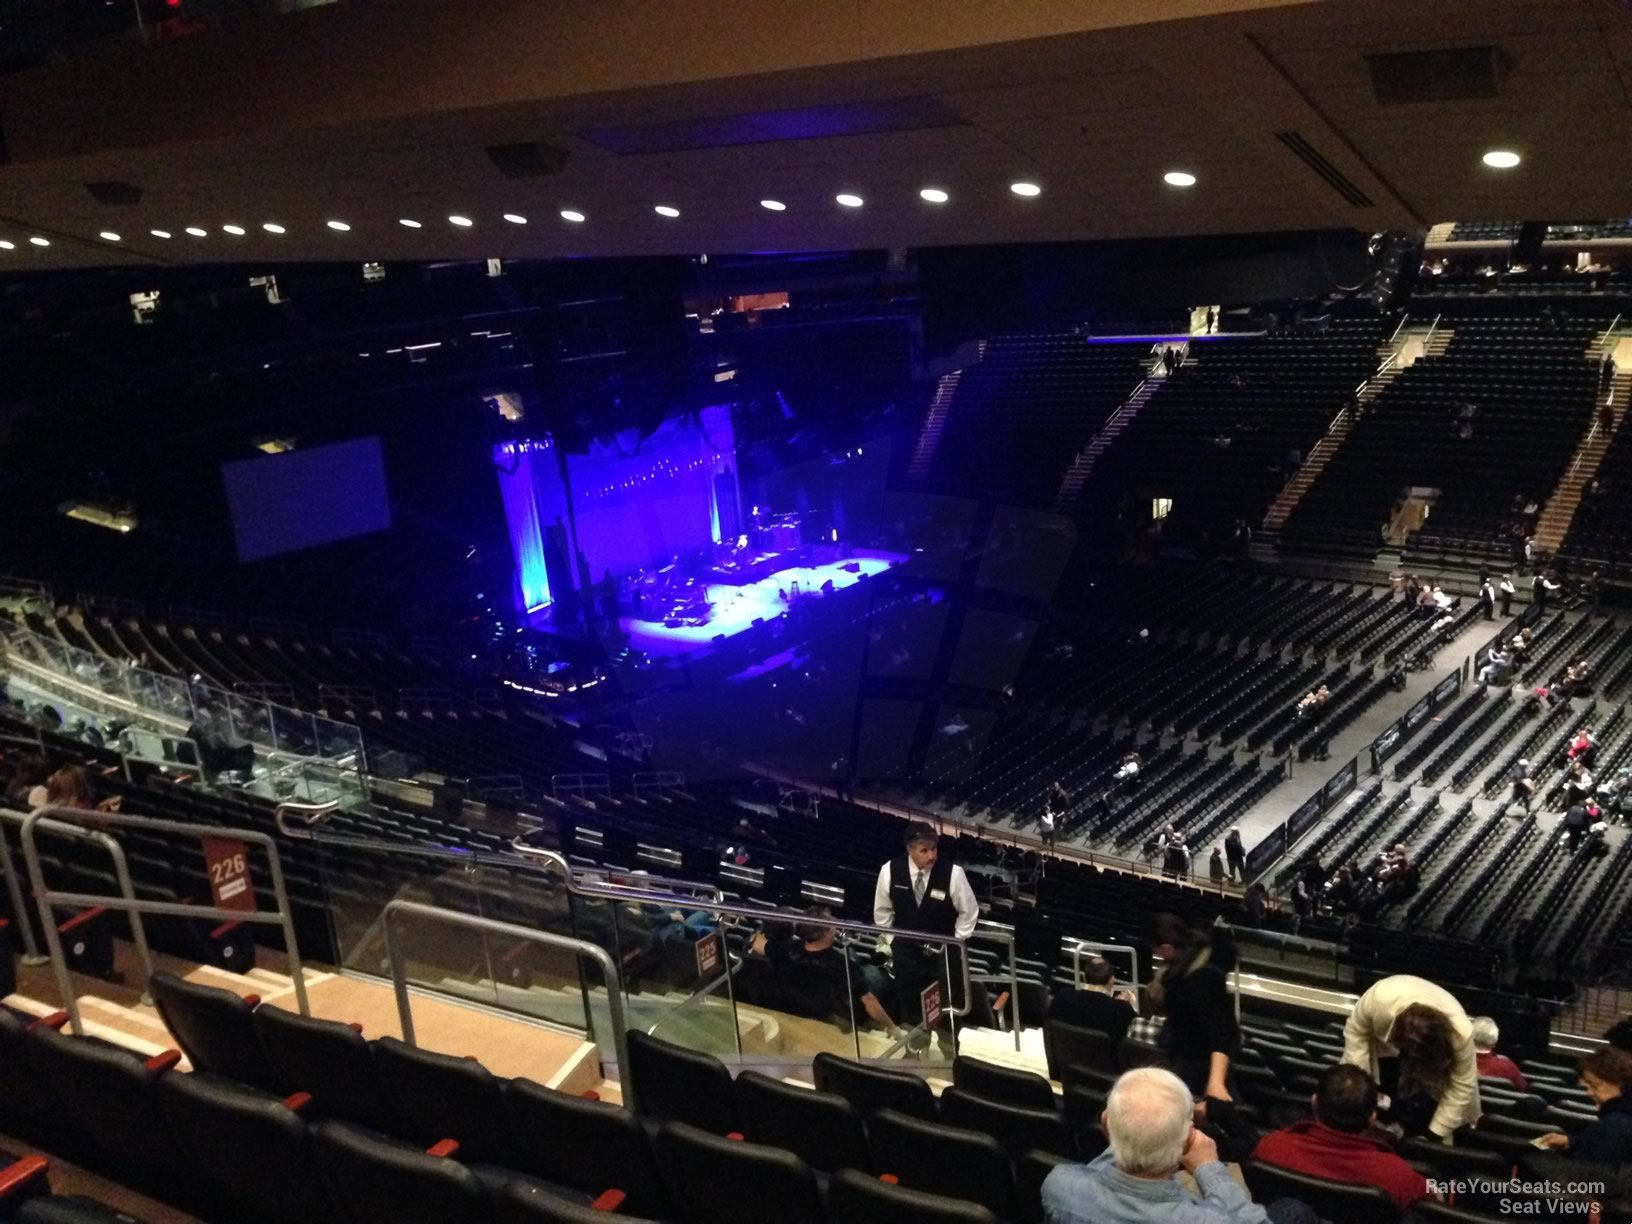 Madison Square Garden Section 225 Concert Seating RateYourSeatscom